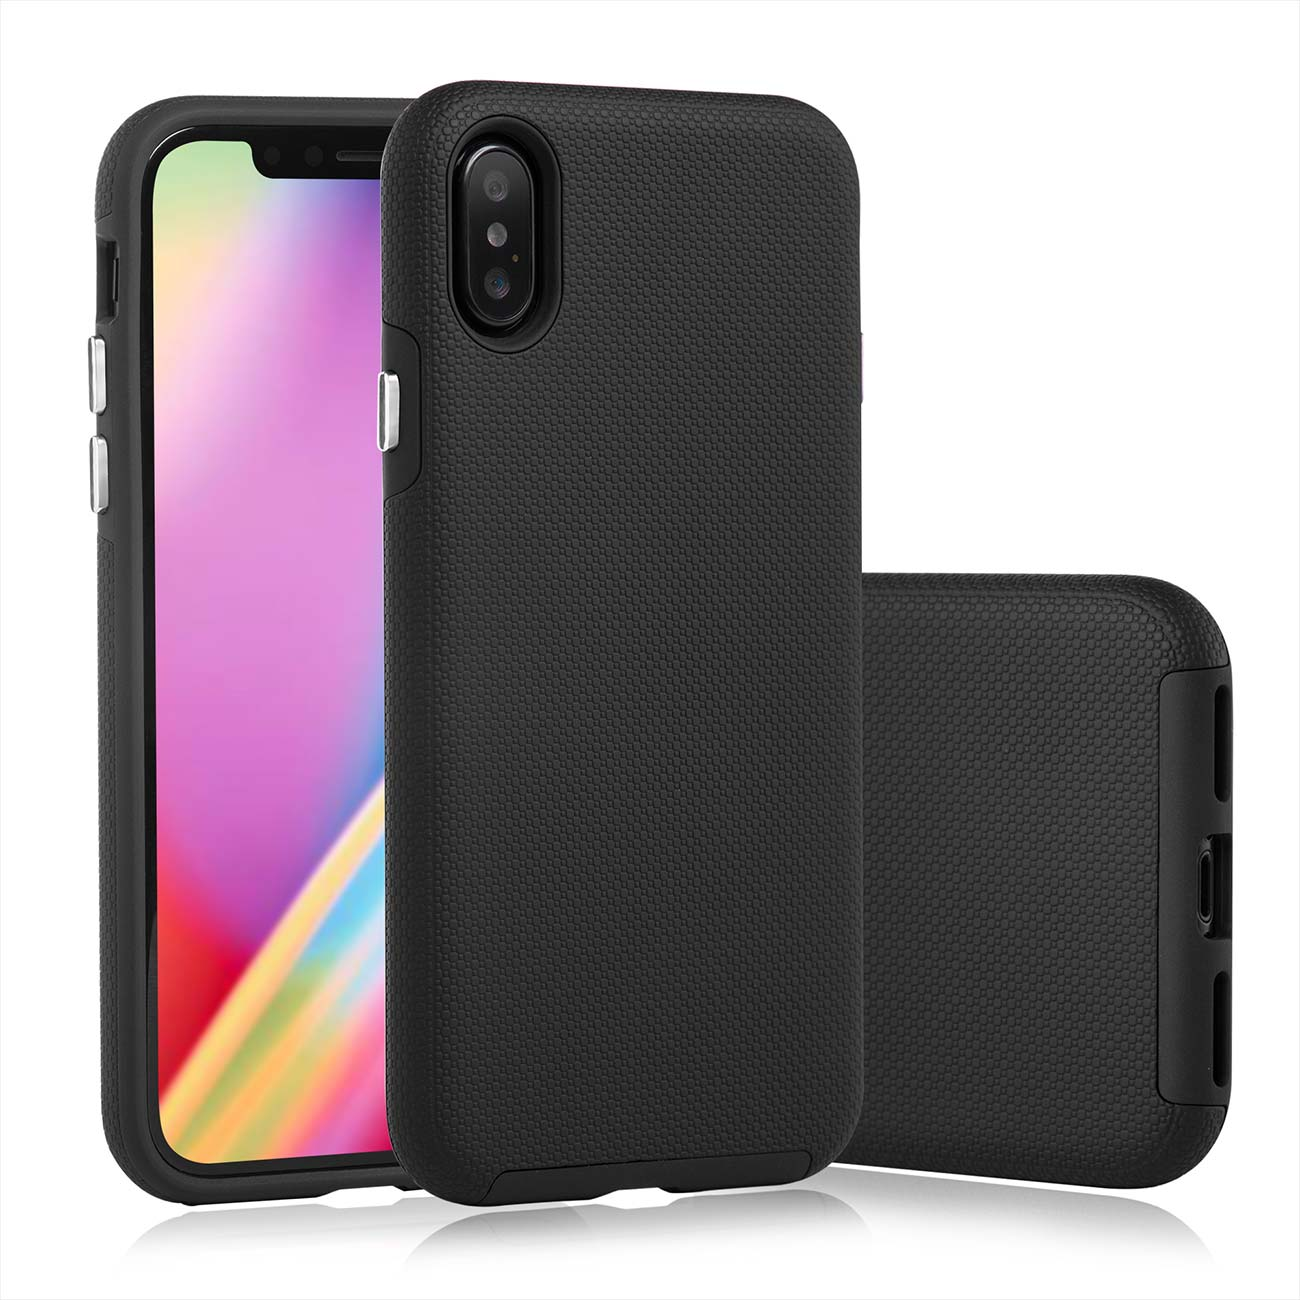 new style 80d1a 87172 MutuTec iPhone X Apple Phone Hard Case - Black | MA Trading